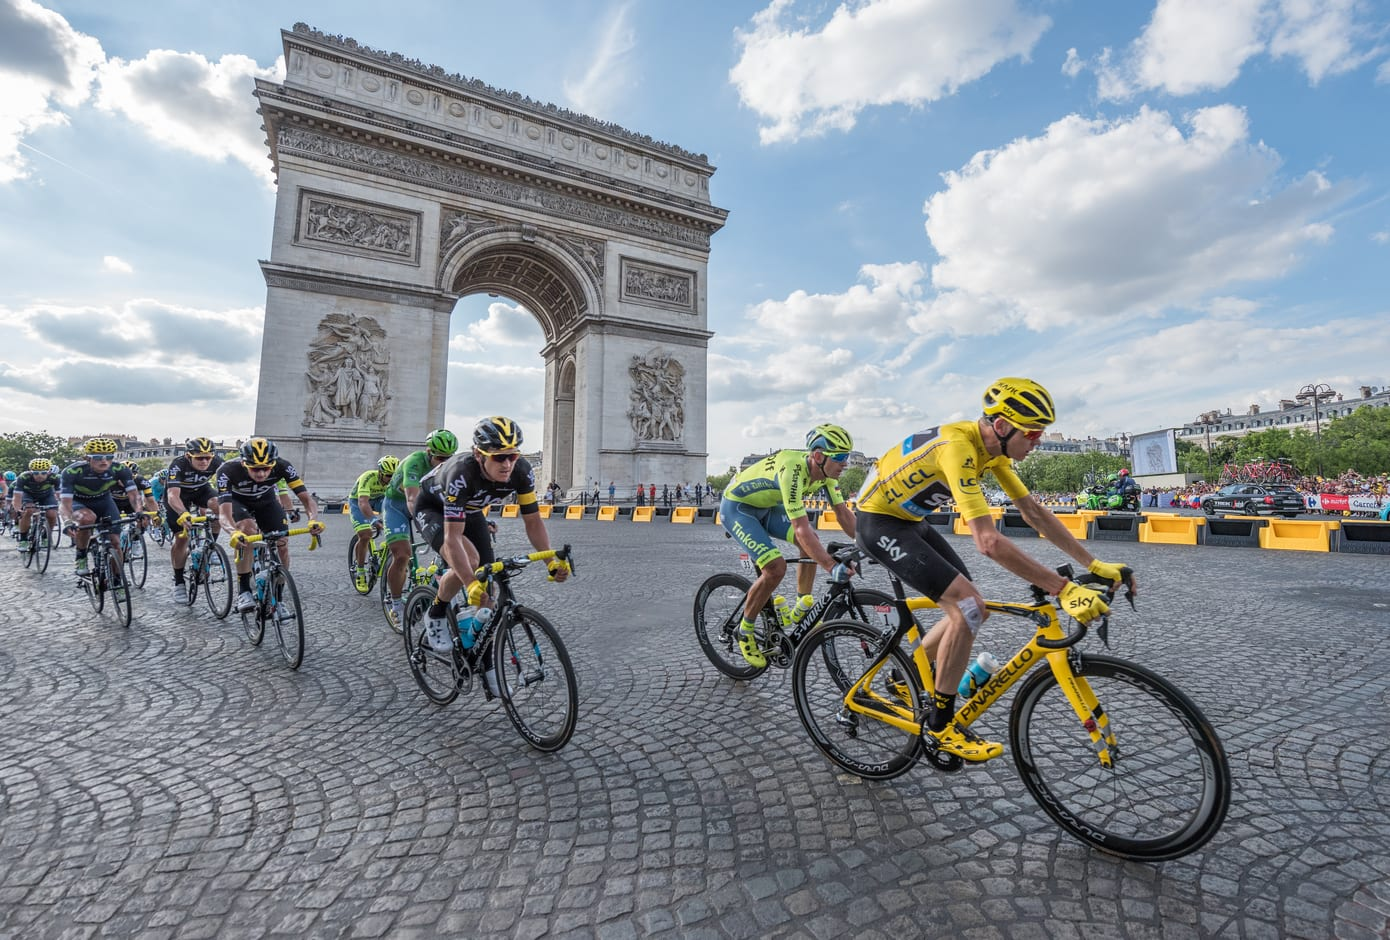 Christopher Froome, wearing the leader's yellow jersey in front of Arc de Triomphe during the Tour de France on the Champs Elysees Avenue.